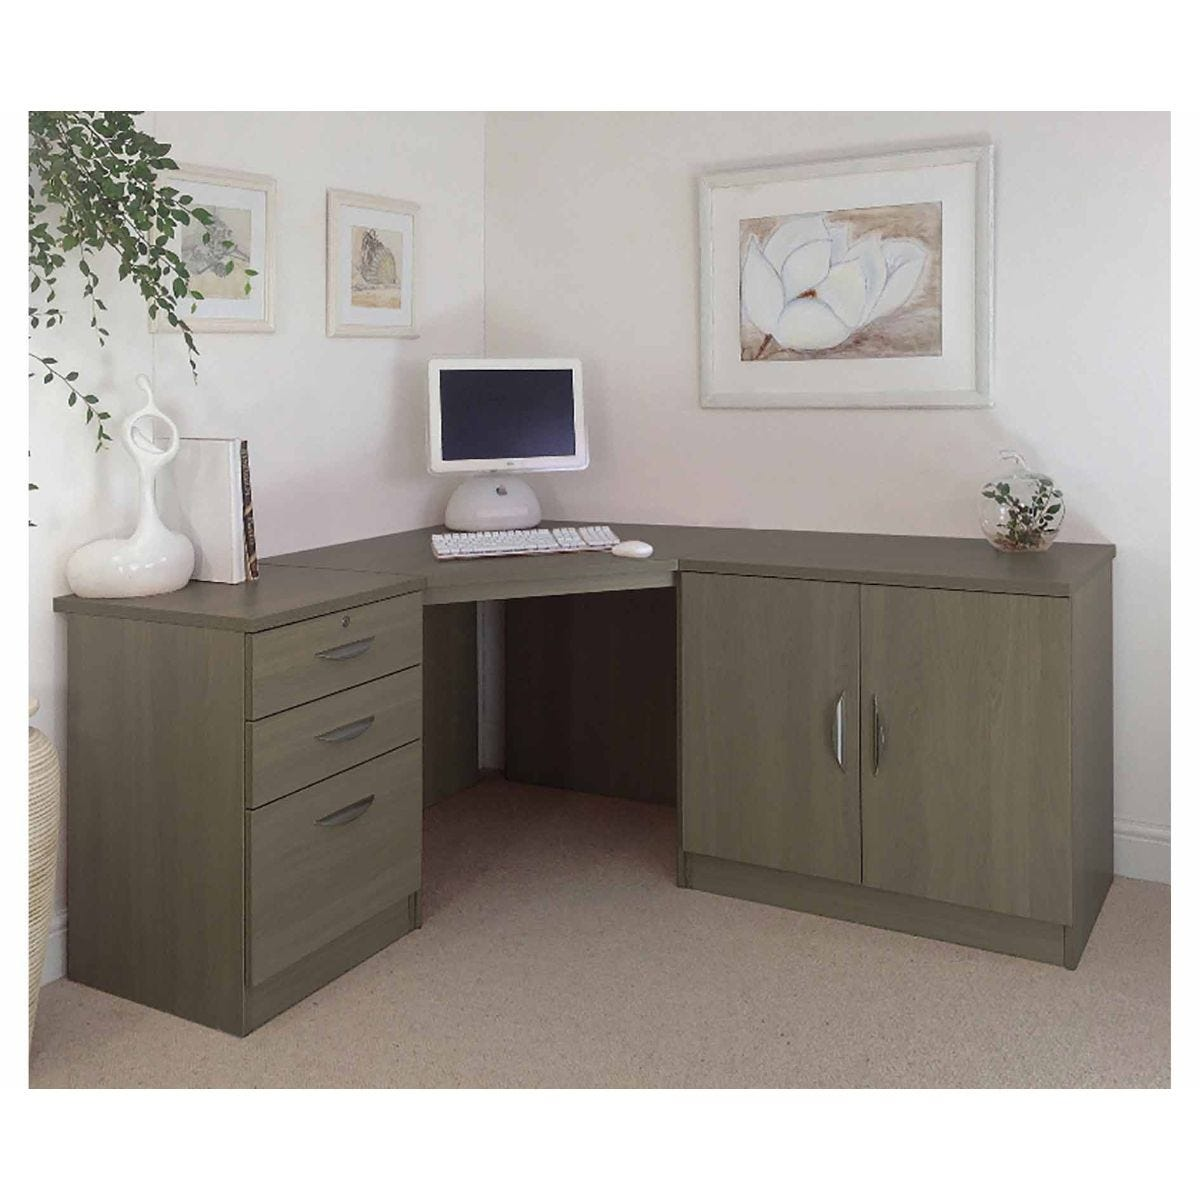 R White Home Office Corner Desk with Cupboard, English Oak Wood Grain